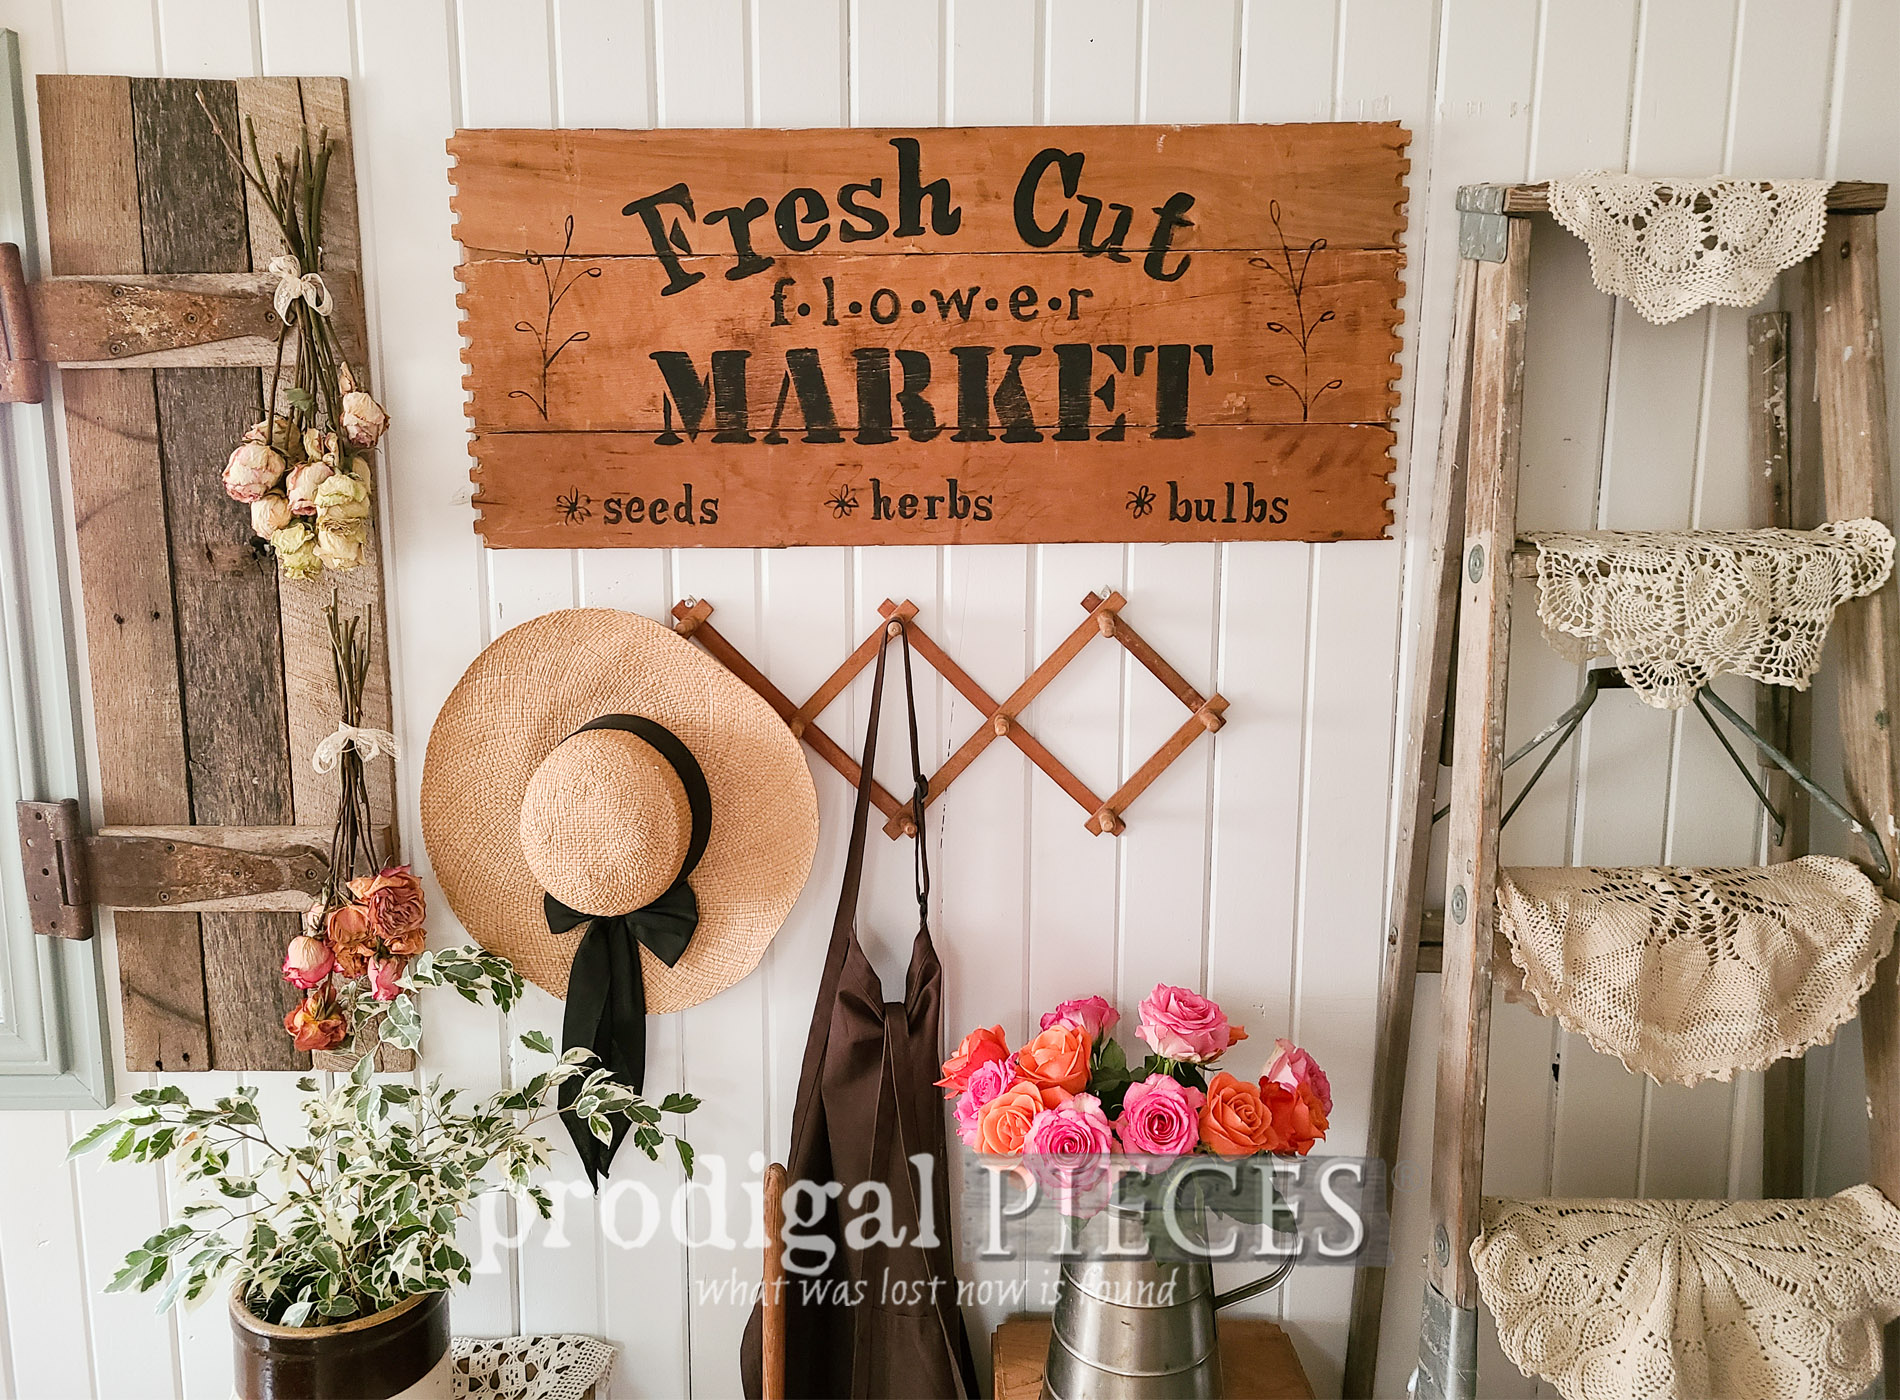 Featured Broken Drawer Decor Made by Larissa of Prodigal Pieces | prodigalpieces.com #prodigalpieces #diy #farmhouse #spring #home #homedecor